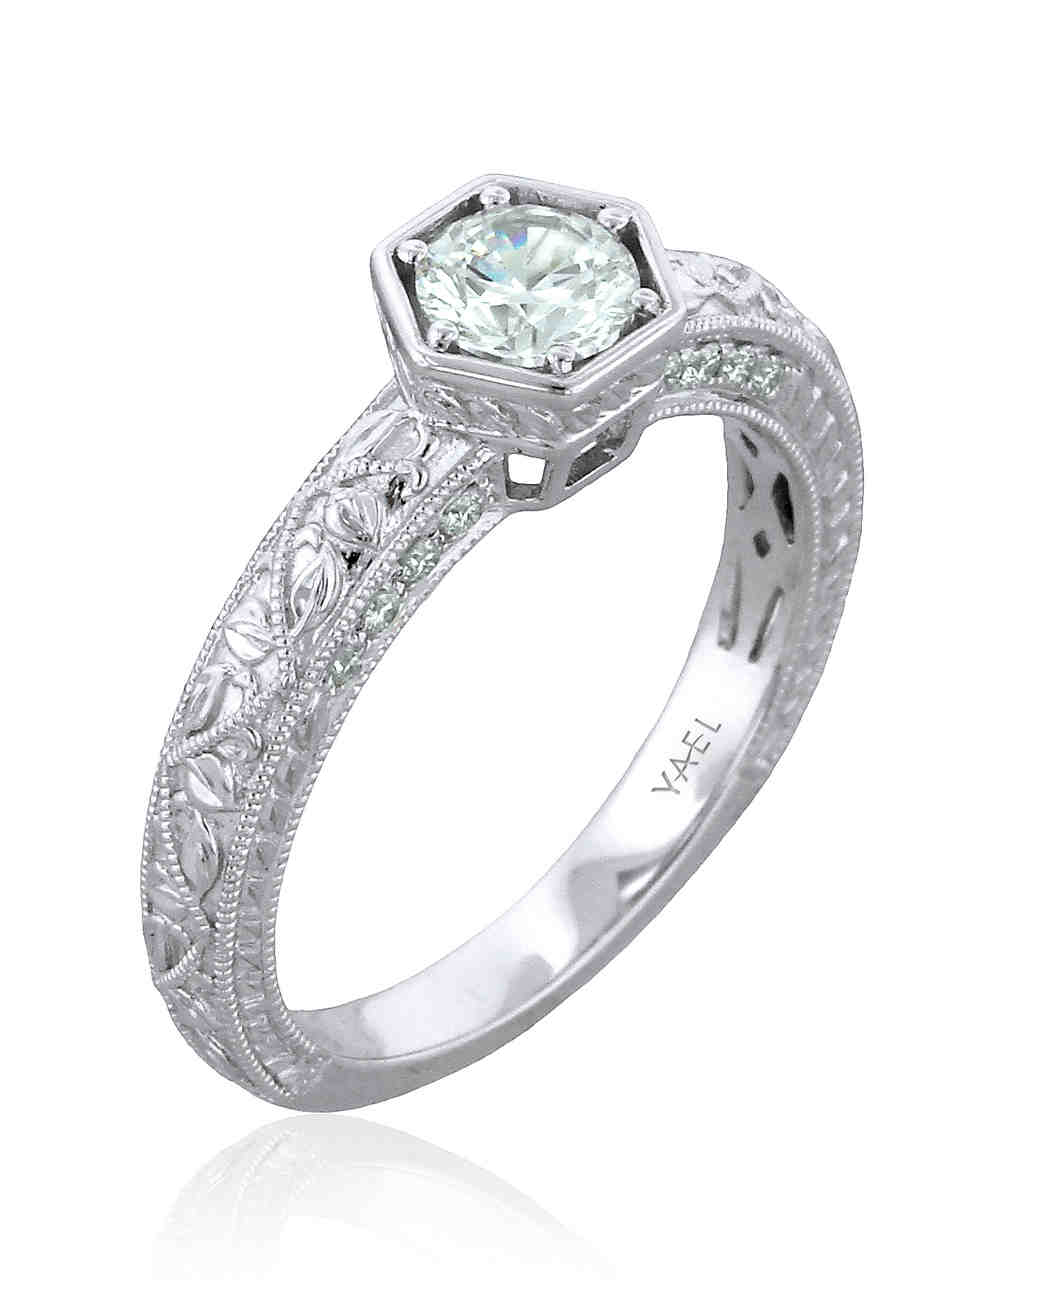 size places rated full world designers rose of wedding london top ring in cuts houston gold uk engagement rings the stores